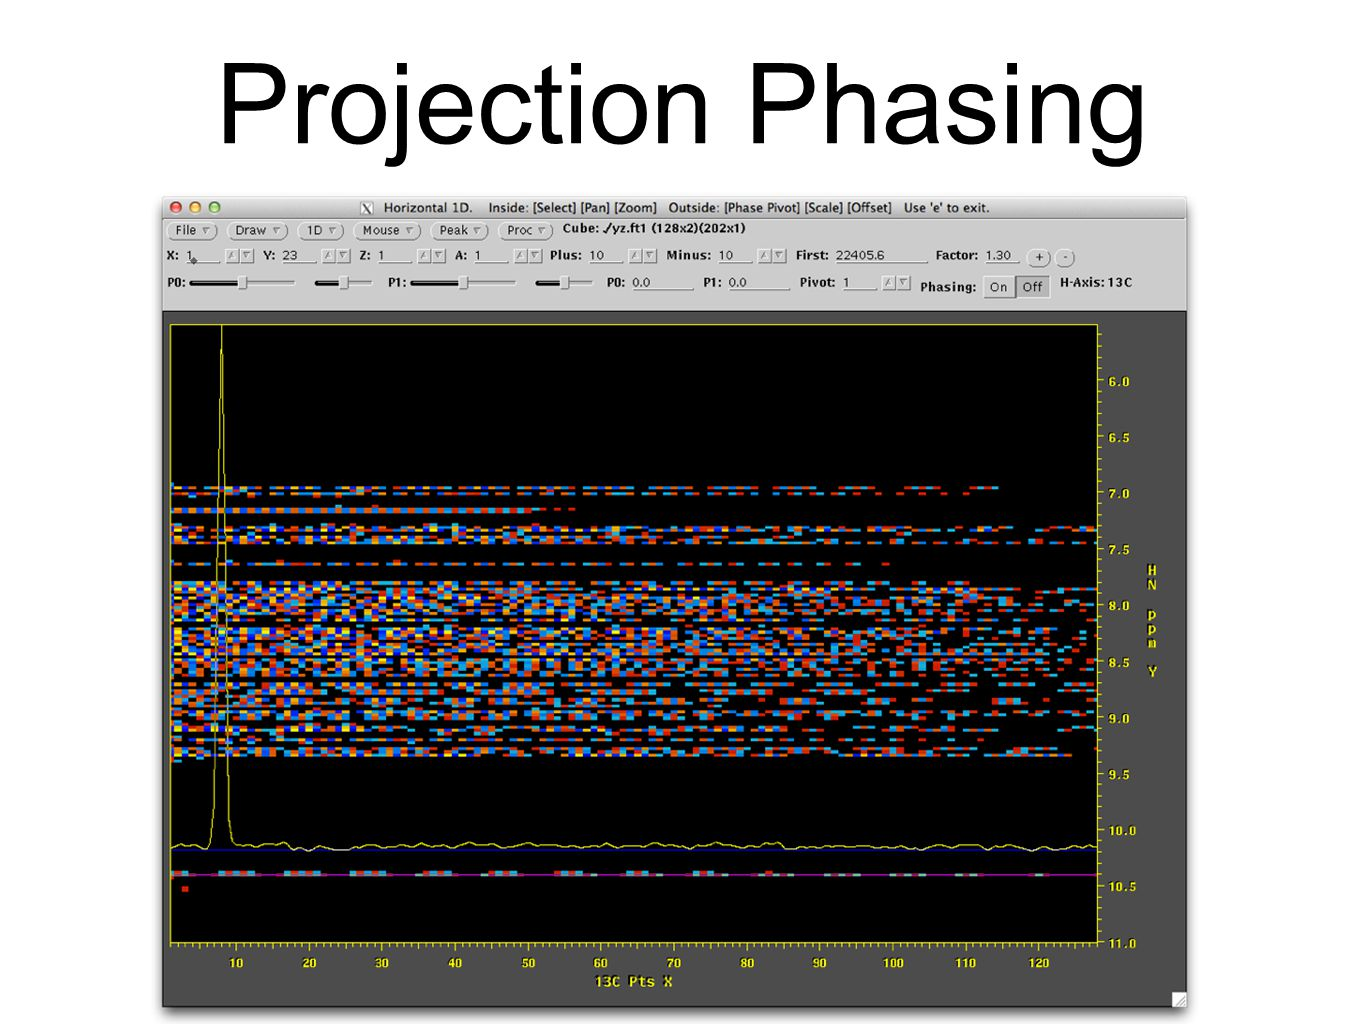 Projection Phasing